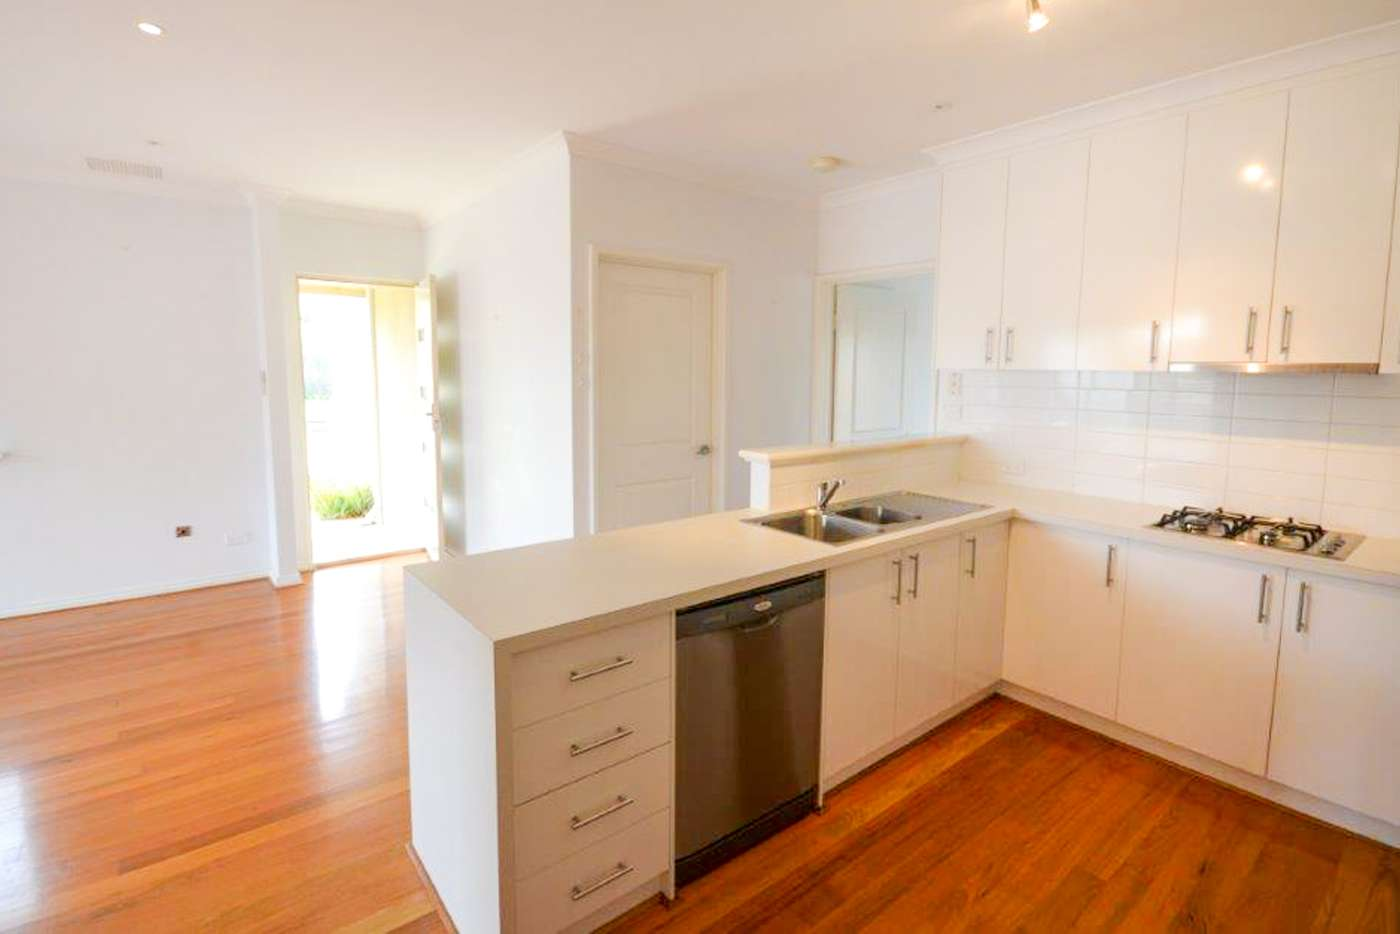 Seventh view of Homely unit listing, 41 L'Aquila Circle, Beeliar WA 6164